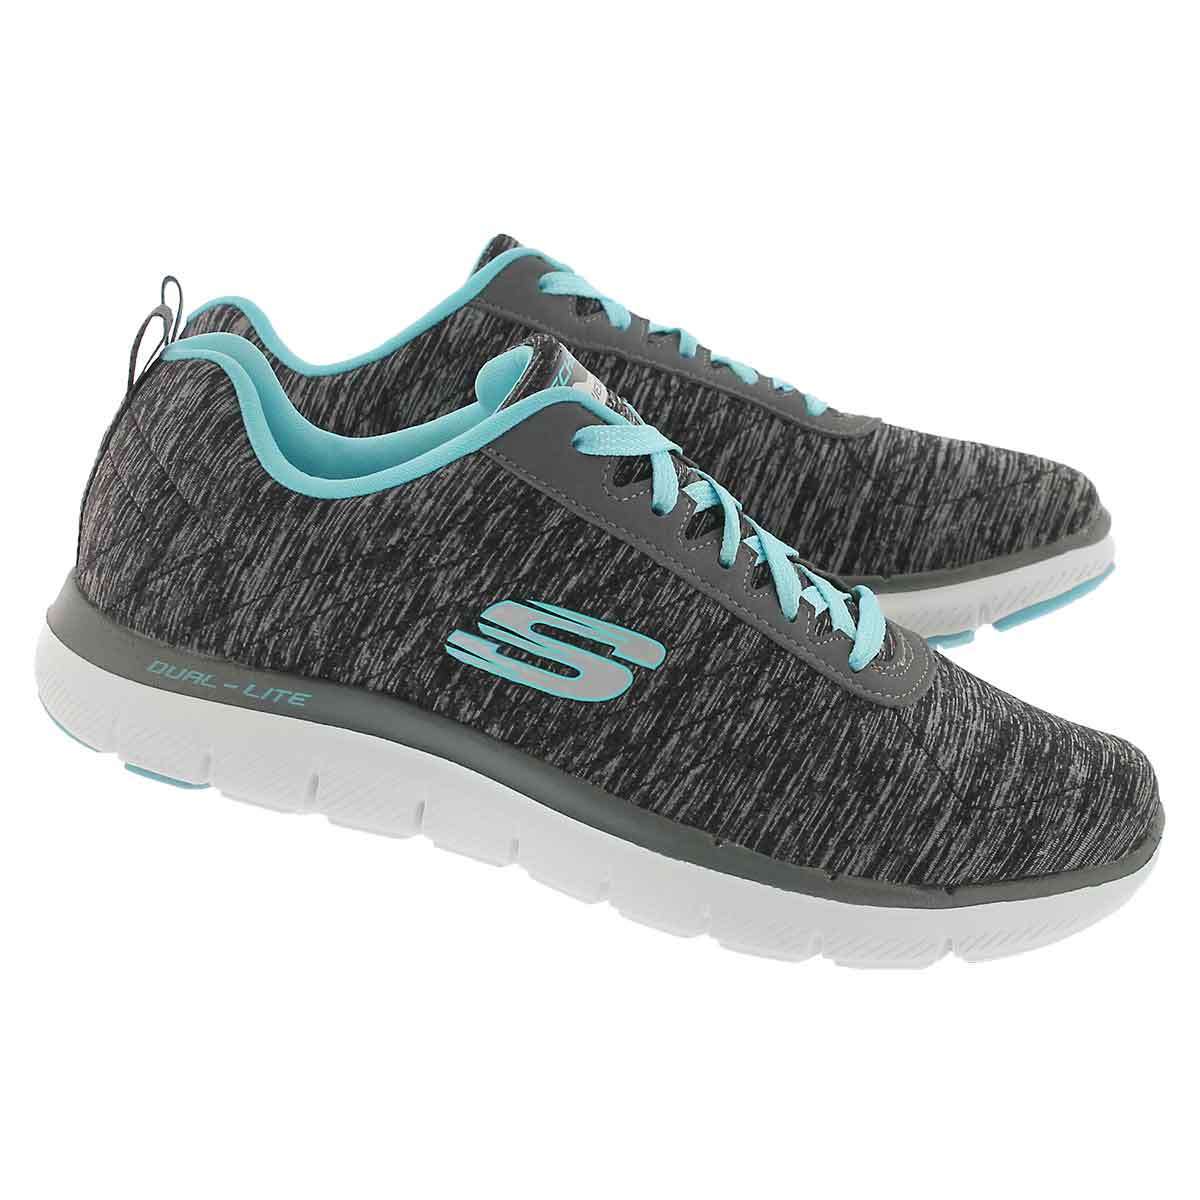 Lds Flex Appeal 2.0 bk/bl lace up runner